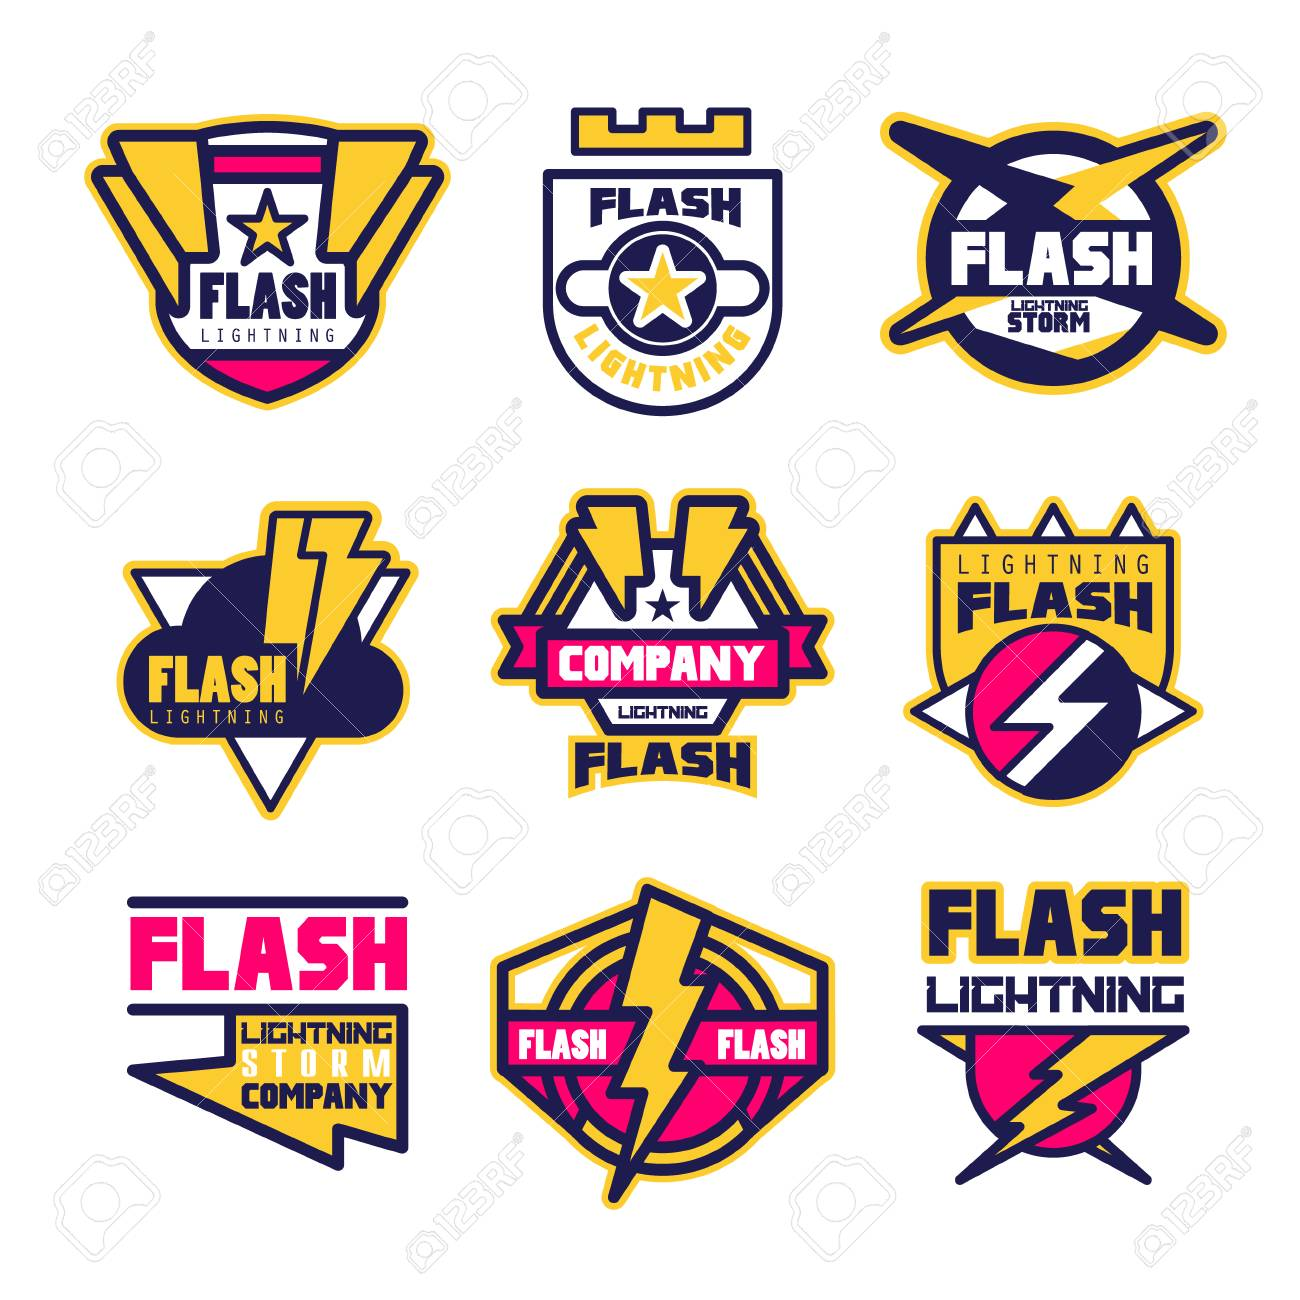 Flash Lightning Company Logo Design Template Elements And Symbols For Electrical Engineering